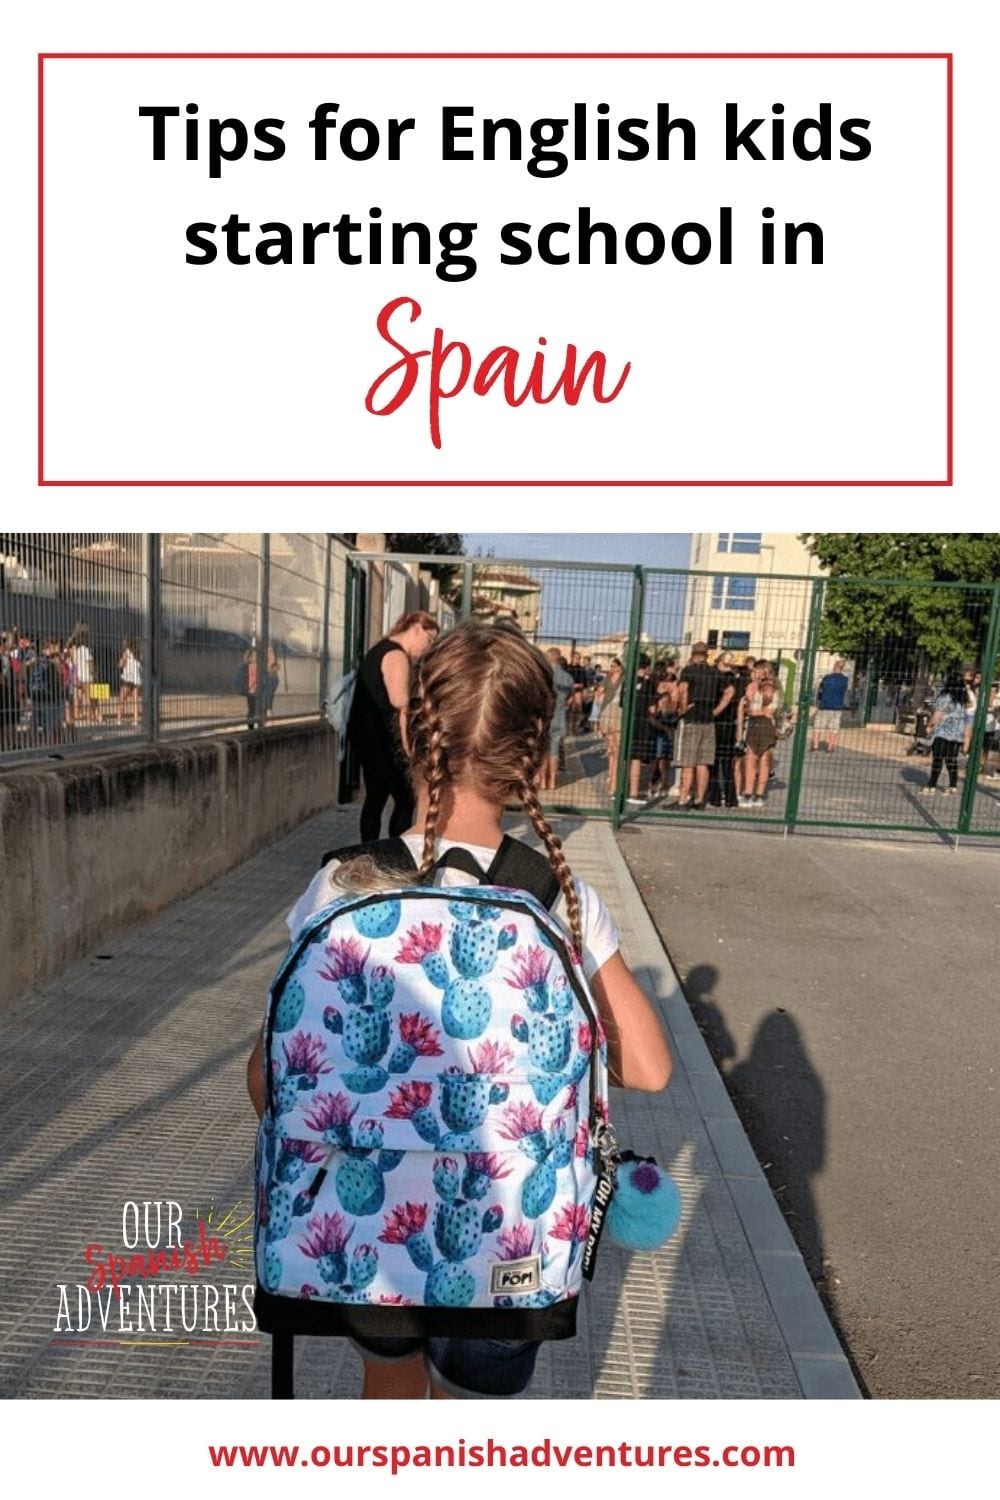 Tips for an English child starting school in Spain | Our Spanish Adventures